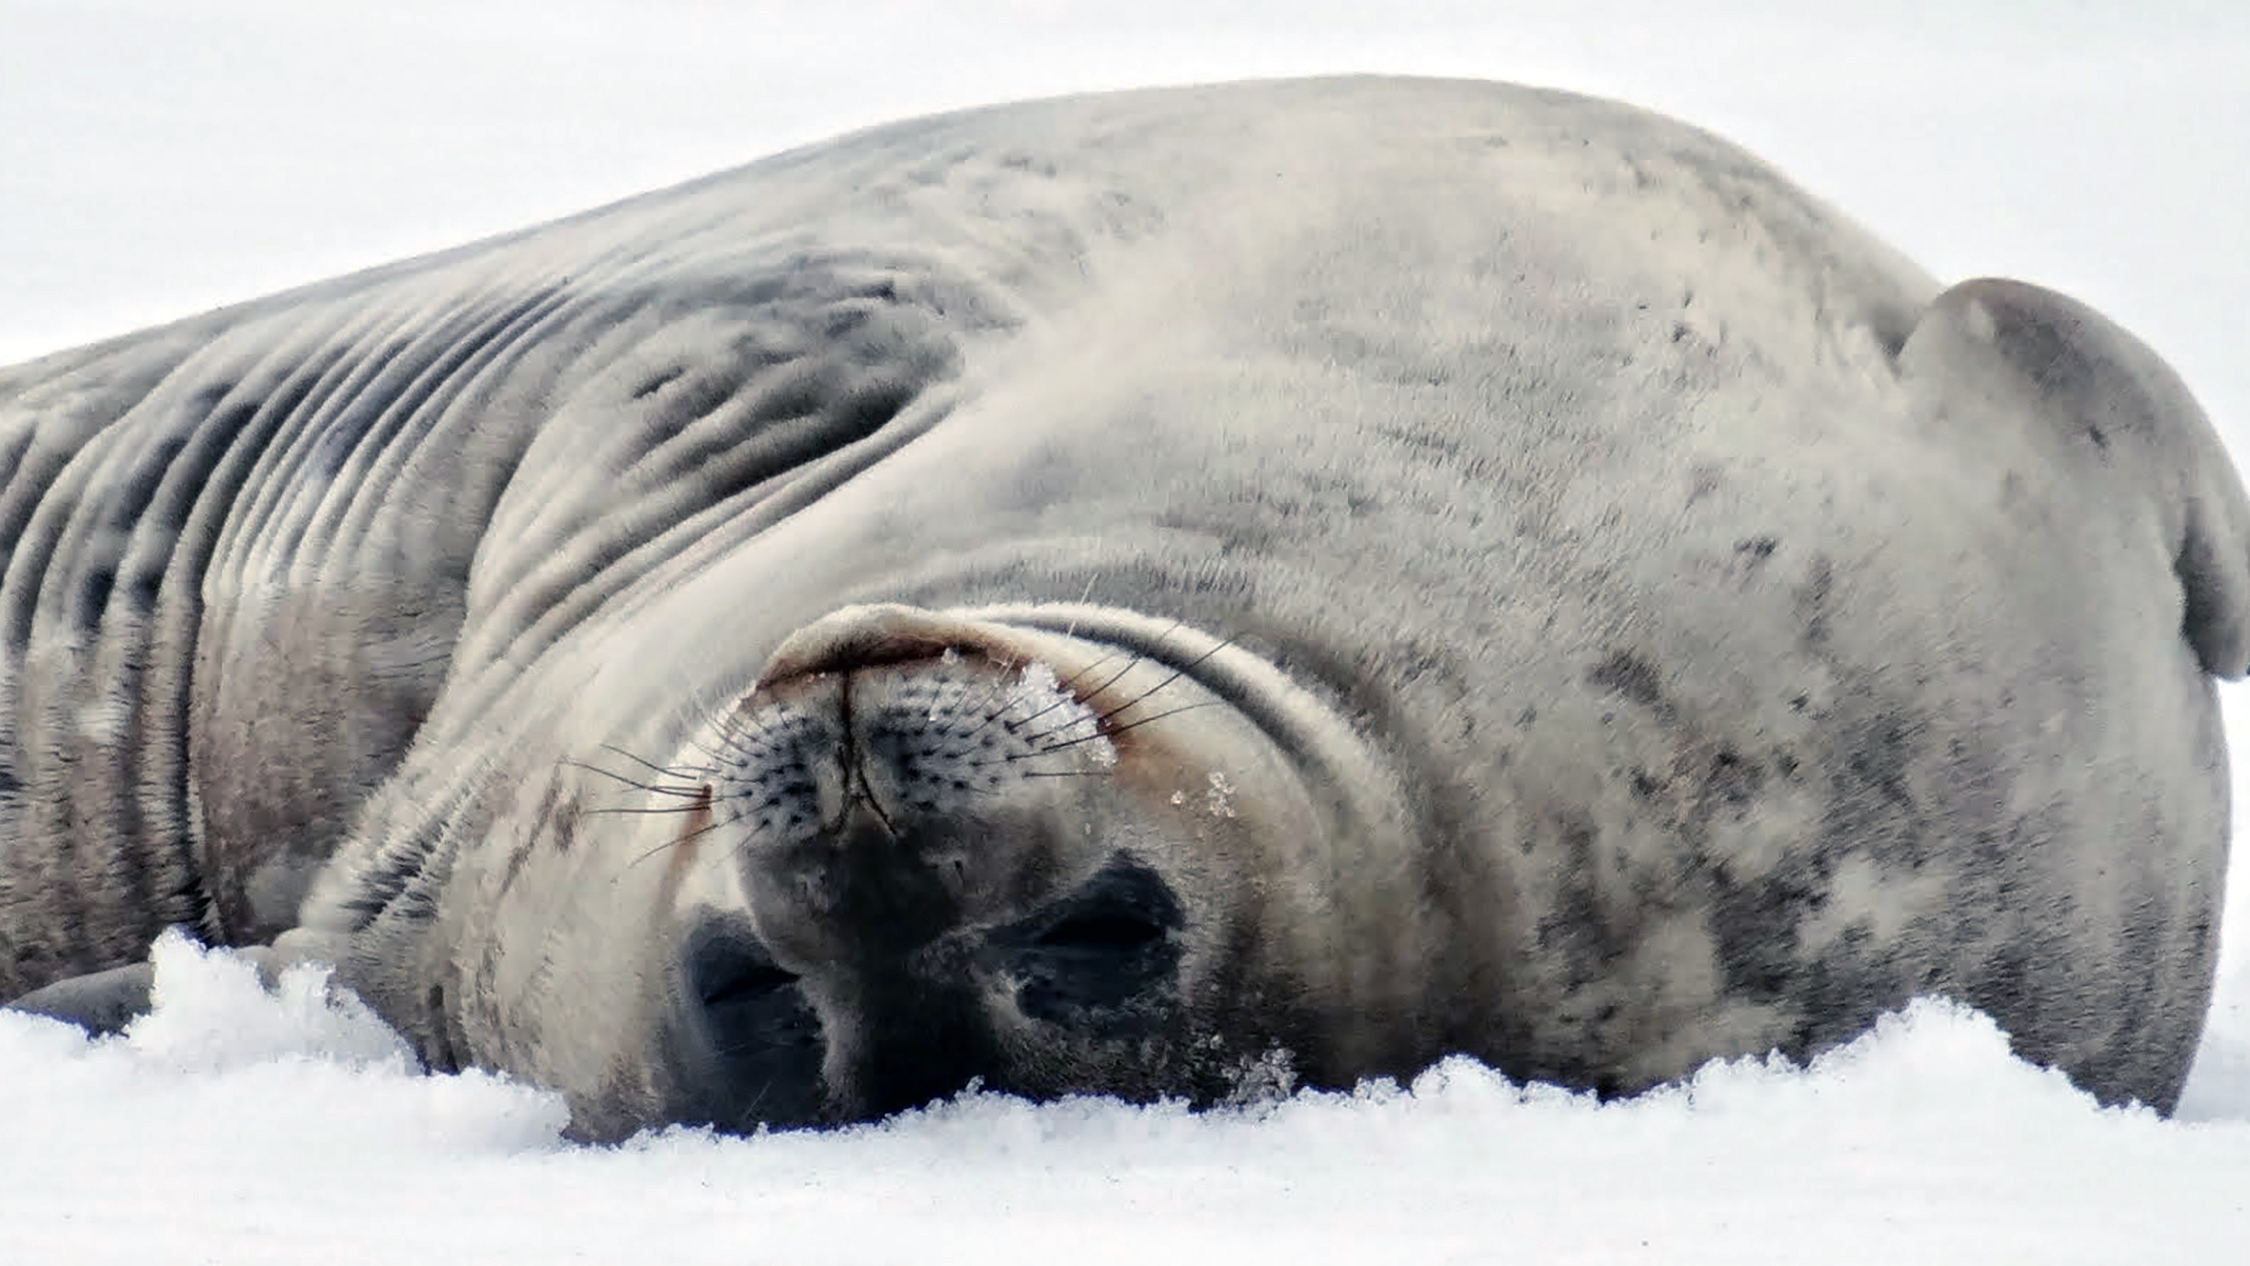 We encountered our first Weddell seals on the shore of Half Moon Island.  These masters of diving in the cold Southern Ocean waters were relaxing in the snow as we passed by them.